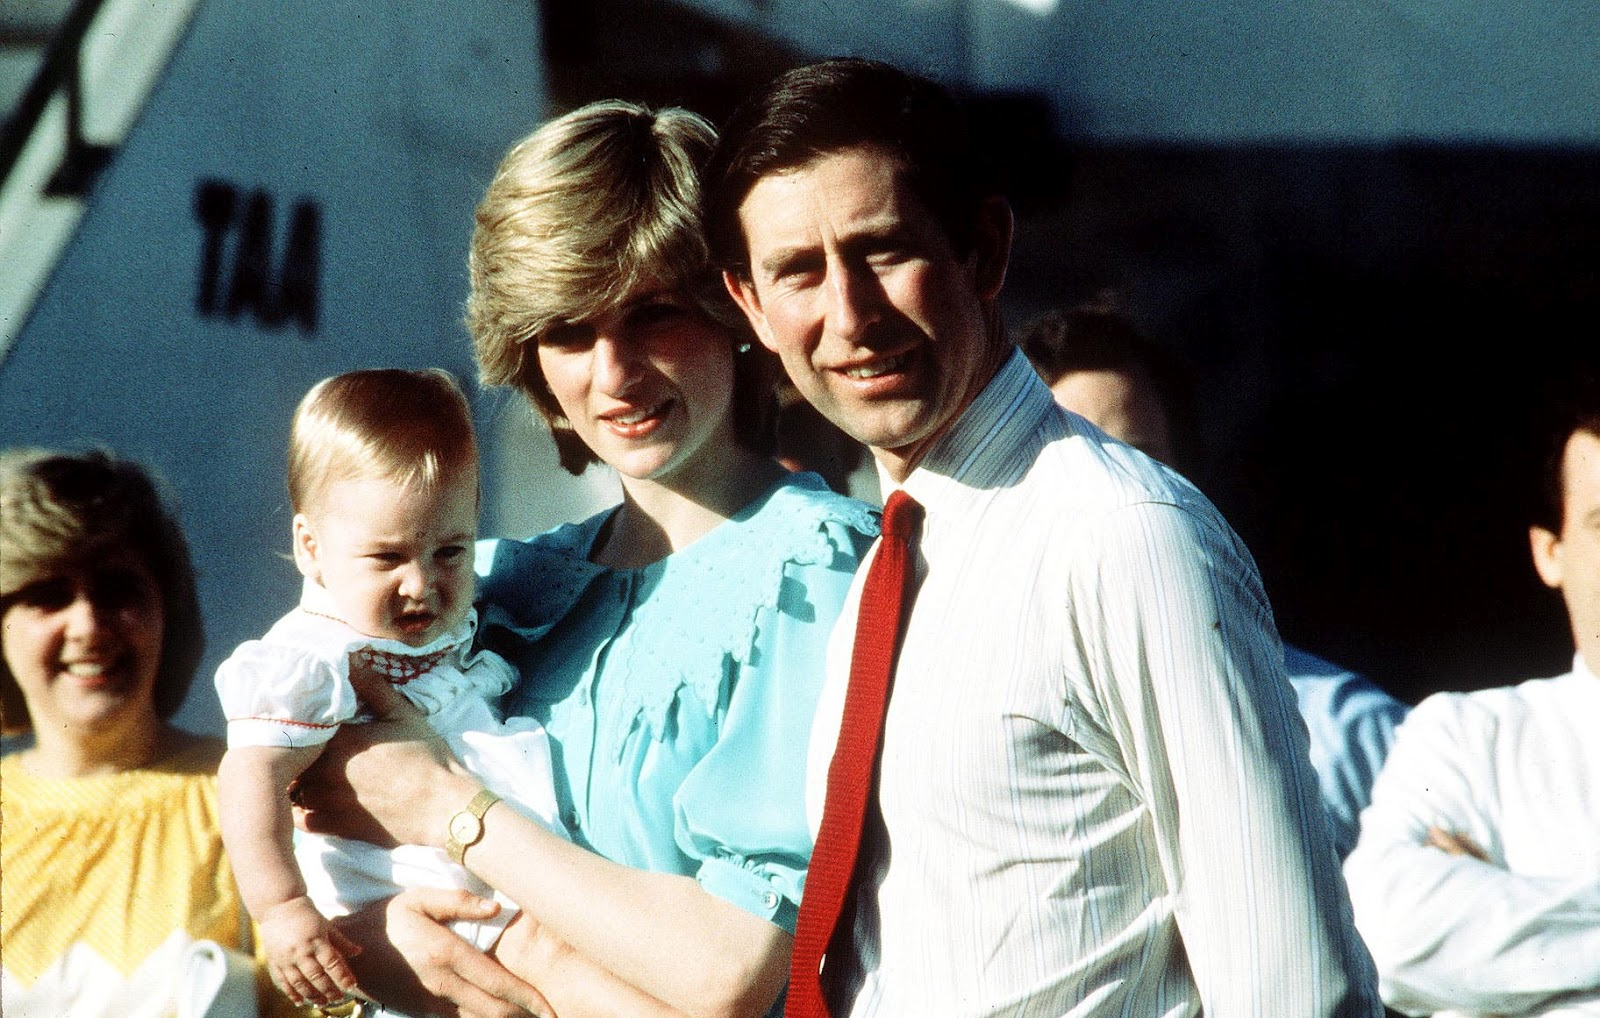 http://2.bp.blogspot.com/-odpvy6AeXKc/UEAWMiAtyPI/AAAAAAAABAw/3OinaVh5yWk/s1600/Prince-Charles-Prince-of-Wales.jpg